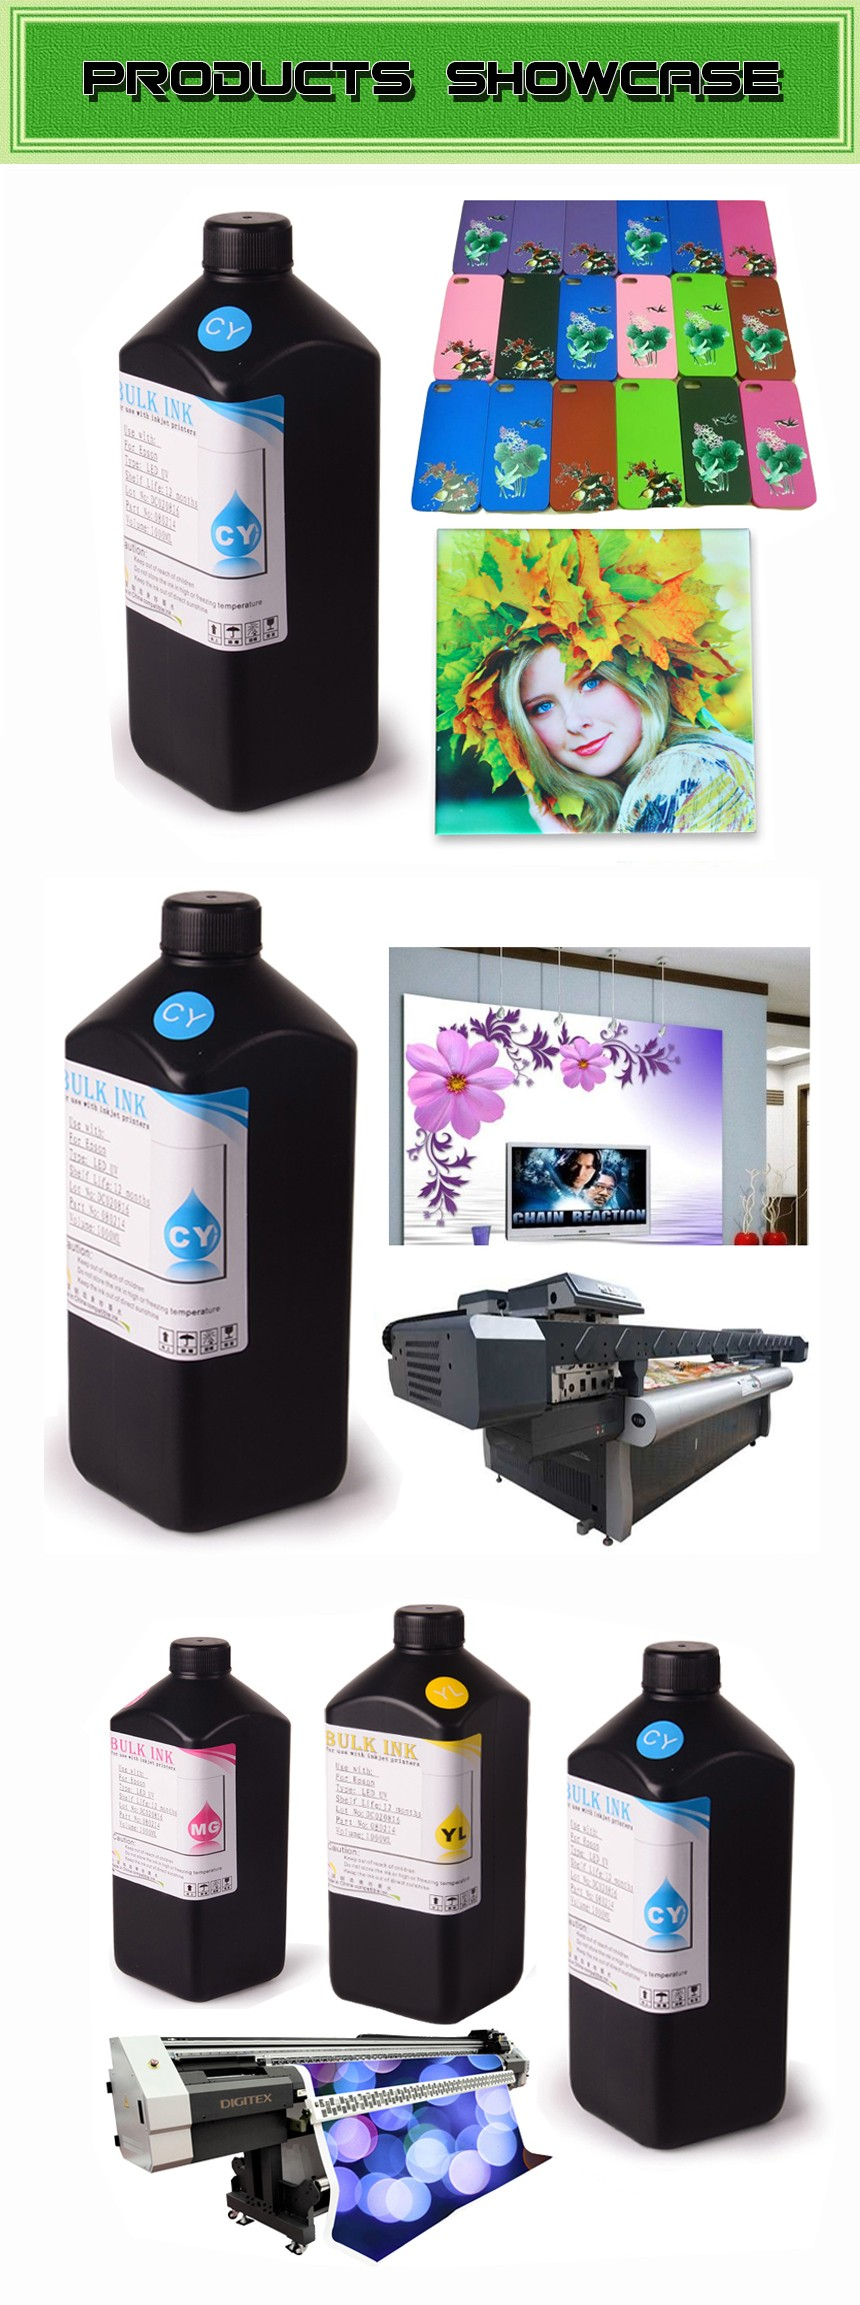 Ocbestjet Best Quality UV offset Printing Ink For Epson T50 RX595 RX580 RX380 R380 R260 R2000 Printer